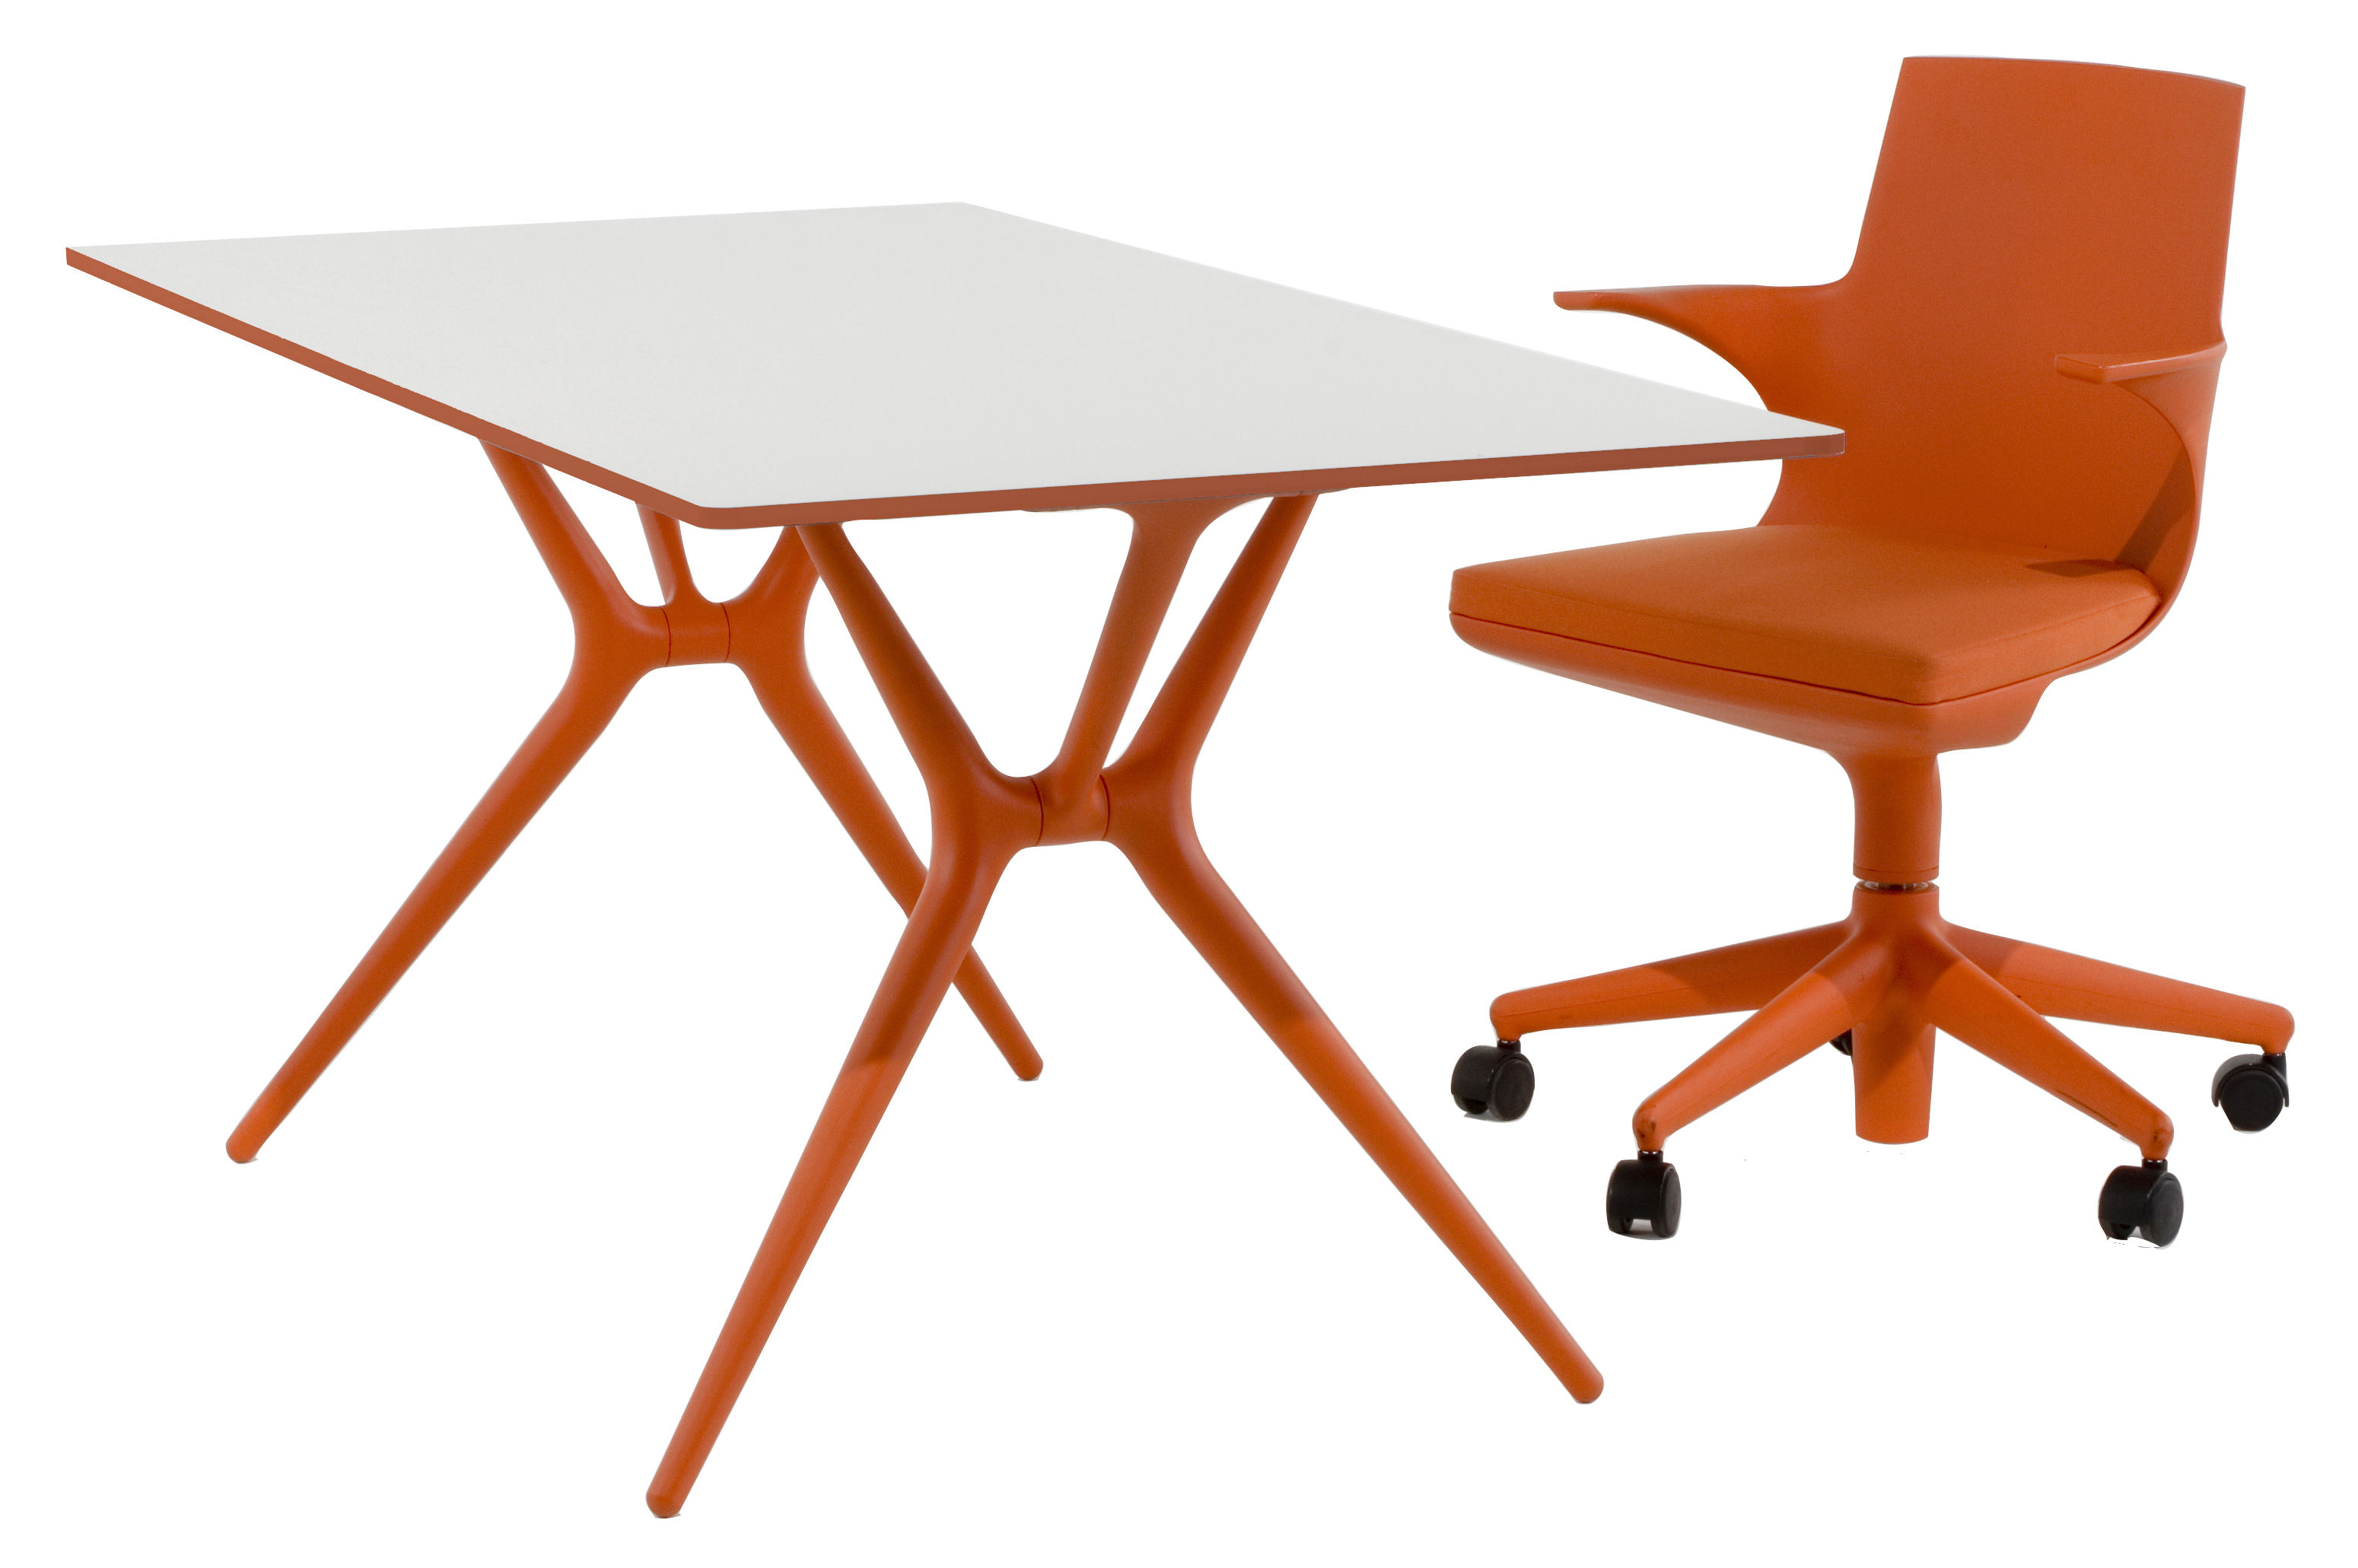 Spoon foldable table 140 x 70 cm white orange feet by for Table 70x140